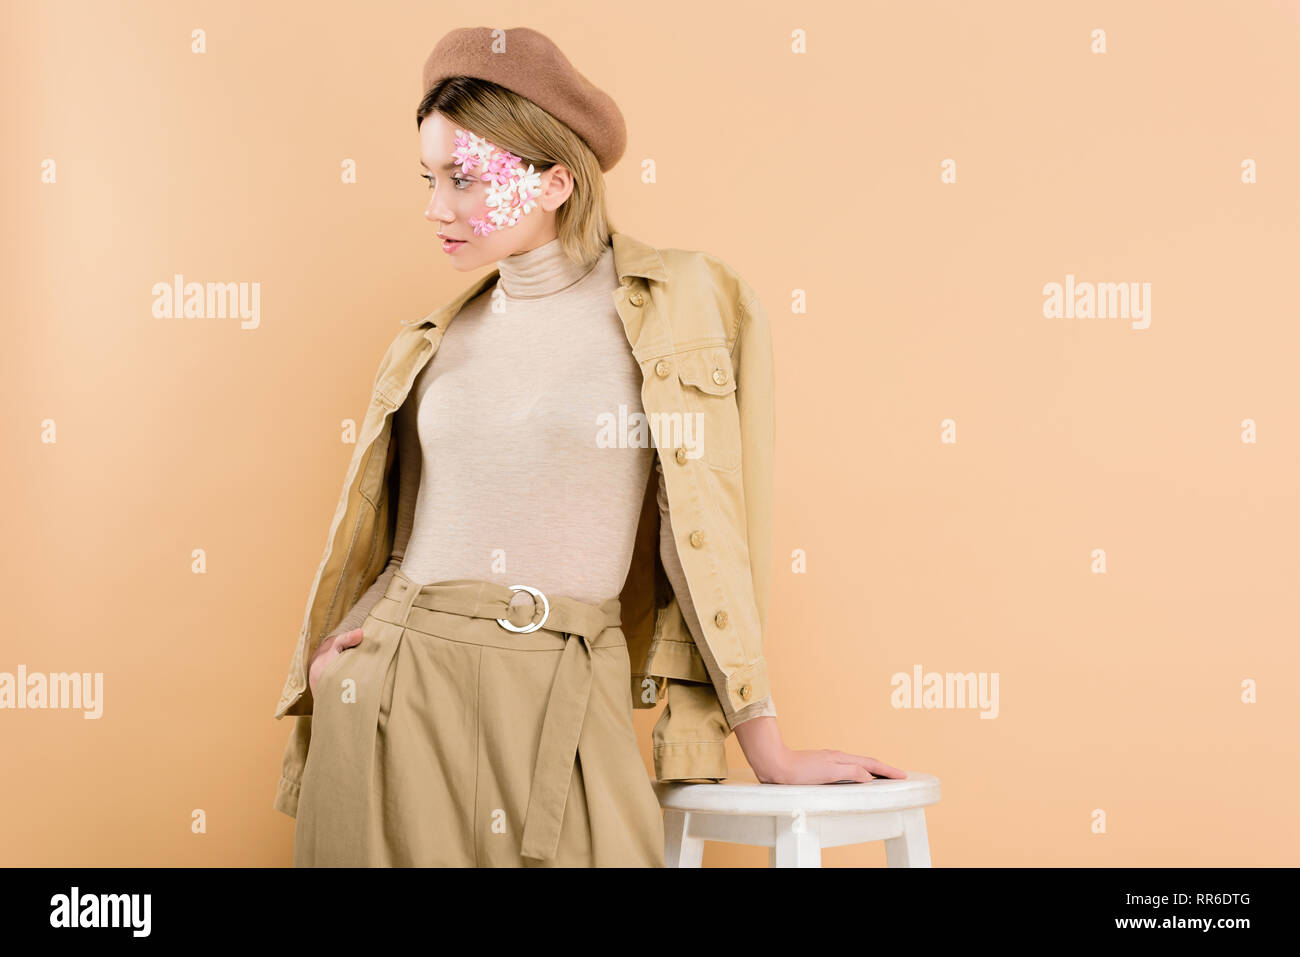 8adb38a007d7a stylish woman in beret standing near chair isolated on beige - Stock Image